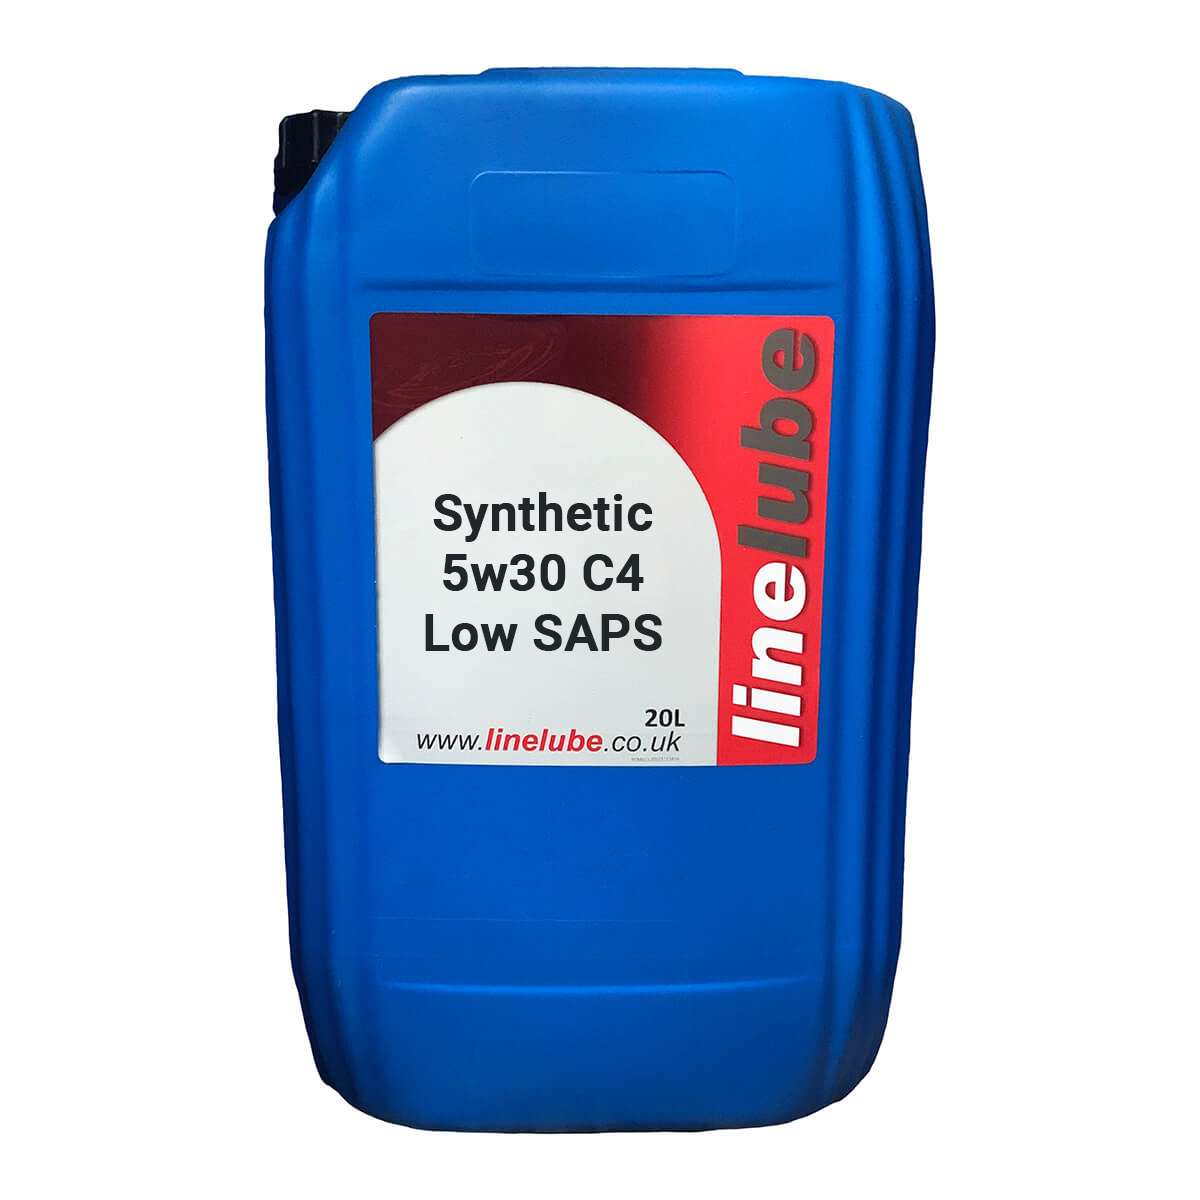 Linelube Synthetic 5W30 C4 Engine Oil